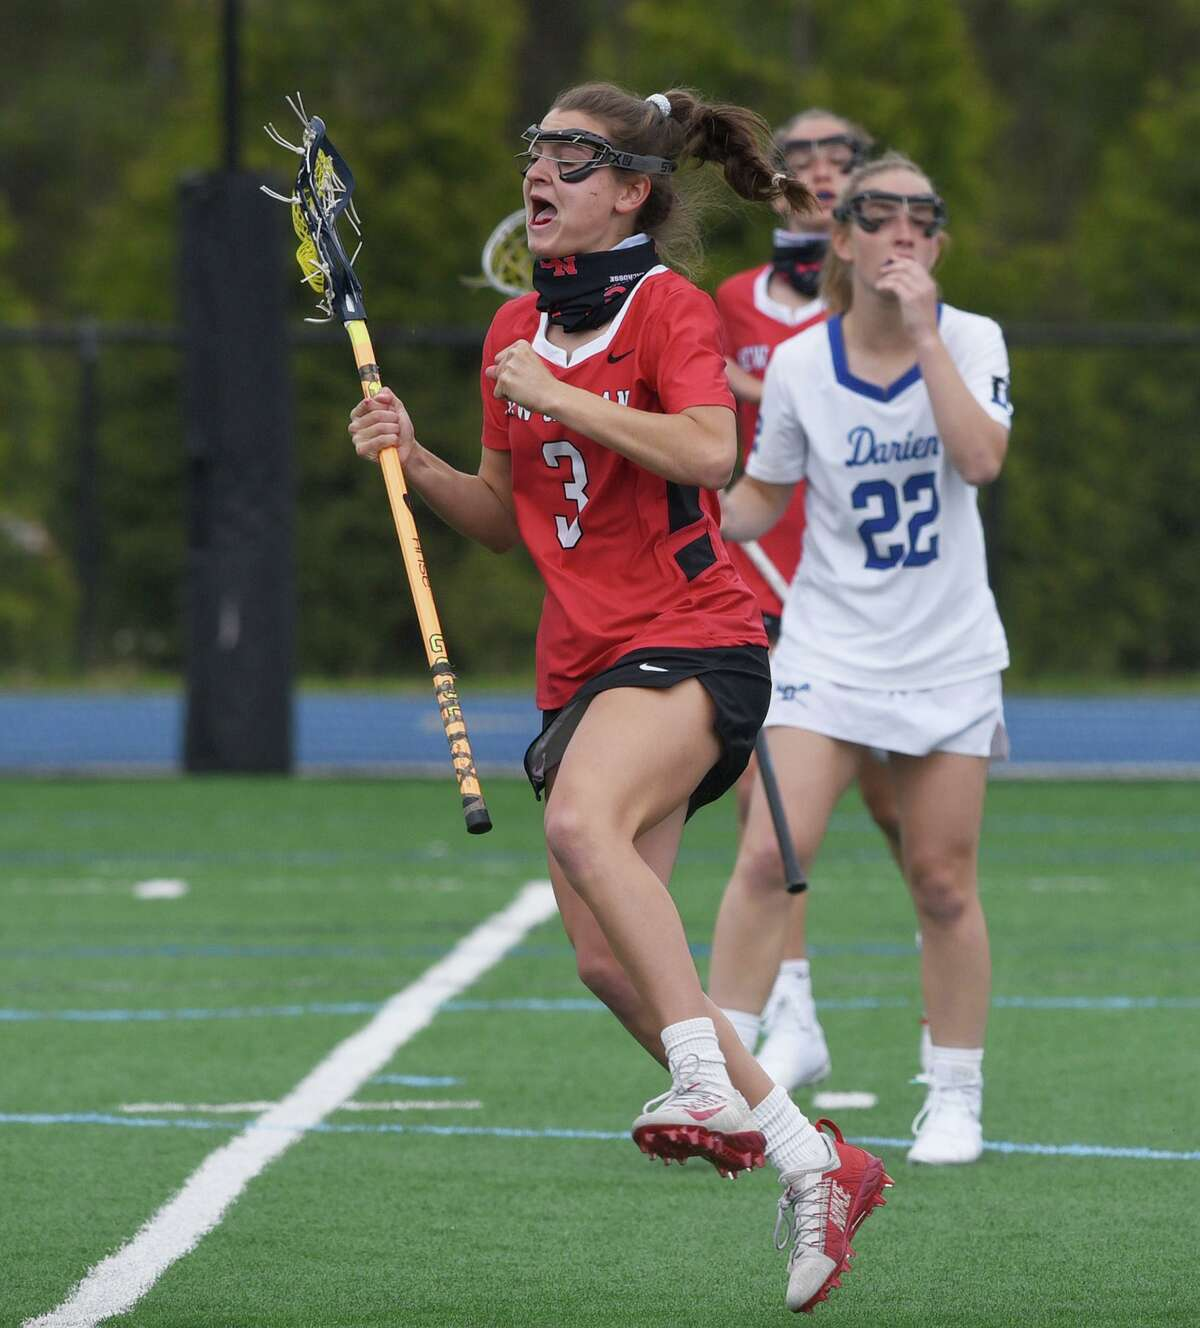 New Canaan's Dillyn Patten (3) celebrates a goal during the Rams' game against Darien on May 3.